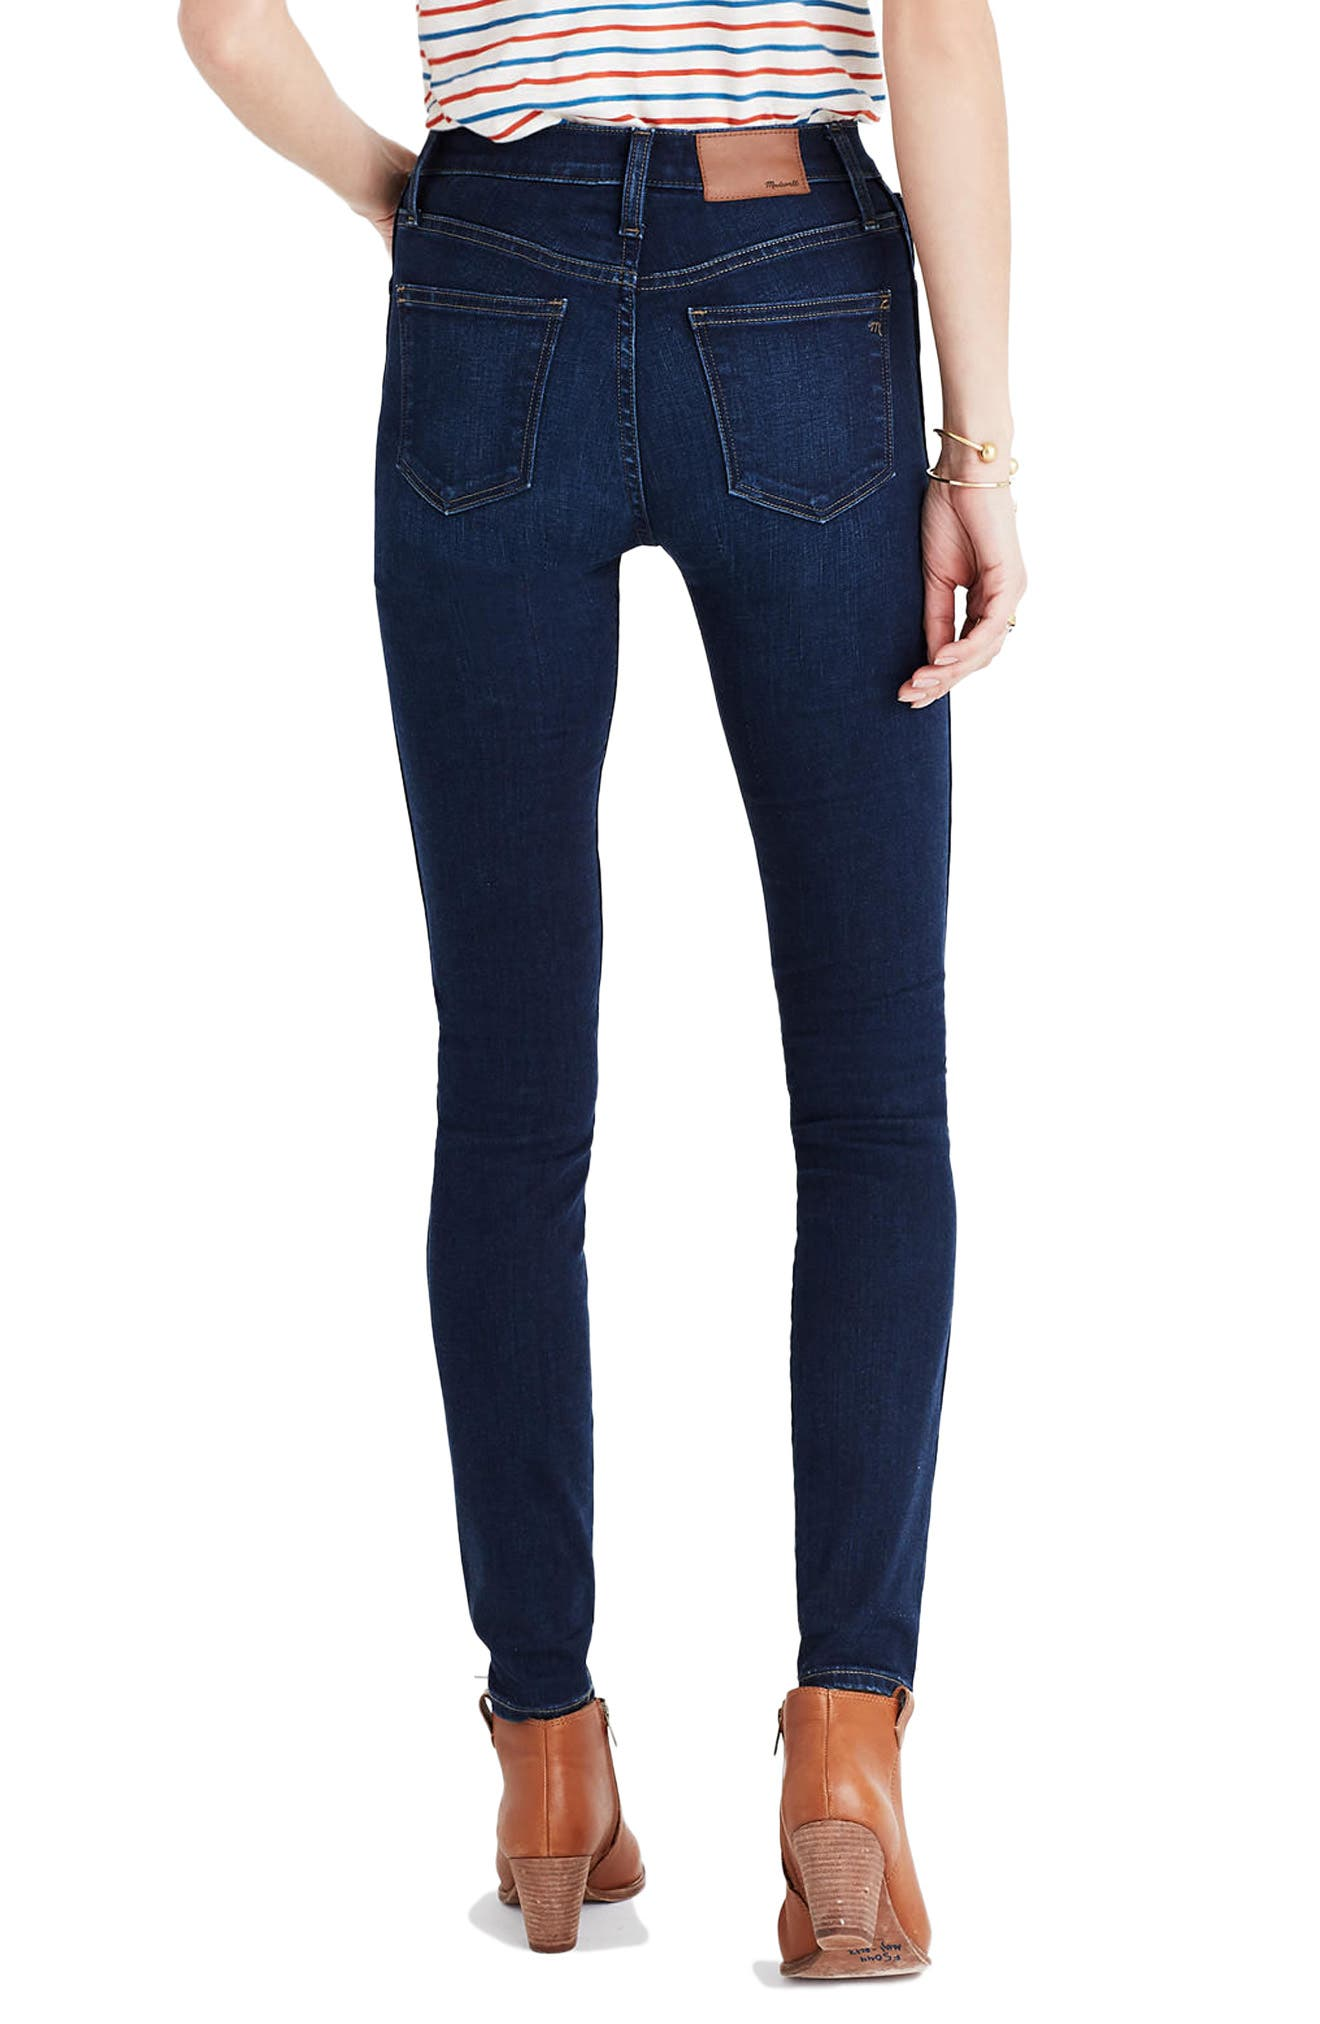 MADEWELL,                             10-Inch High Rise Skinny Jeans,                             Alternate thumbnail 4, color,                             HAYES WASH